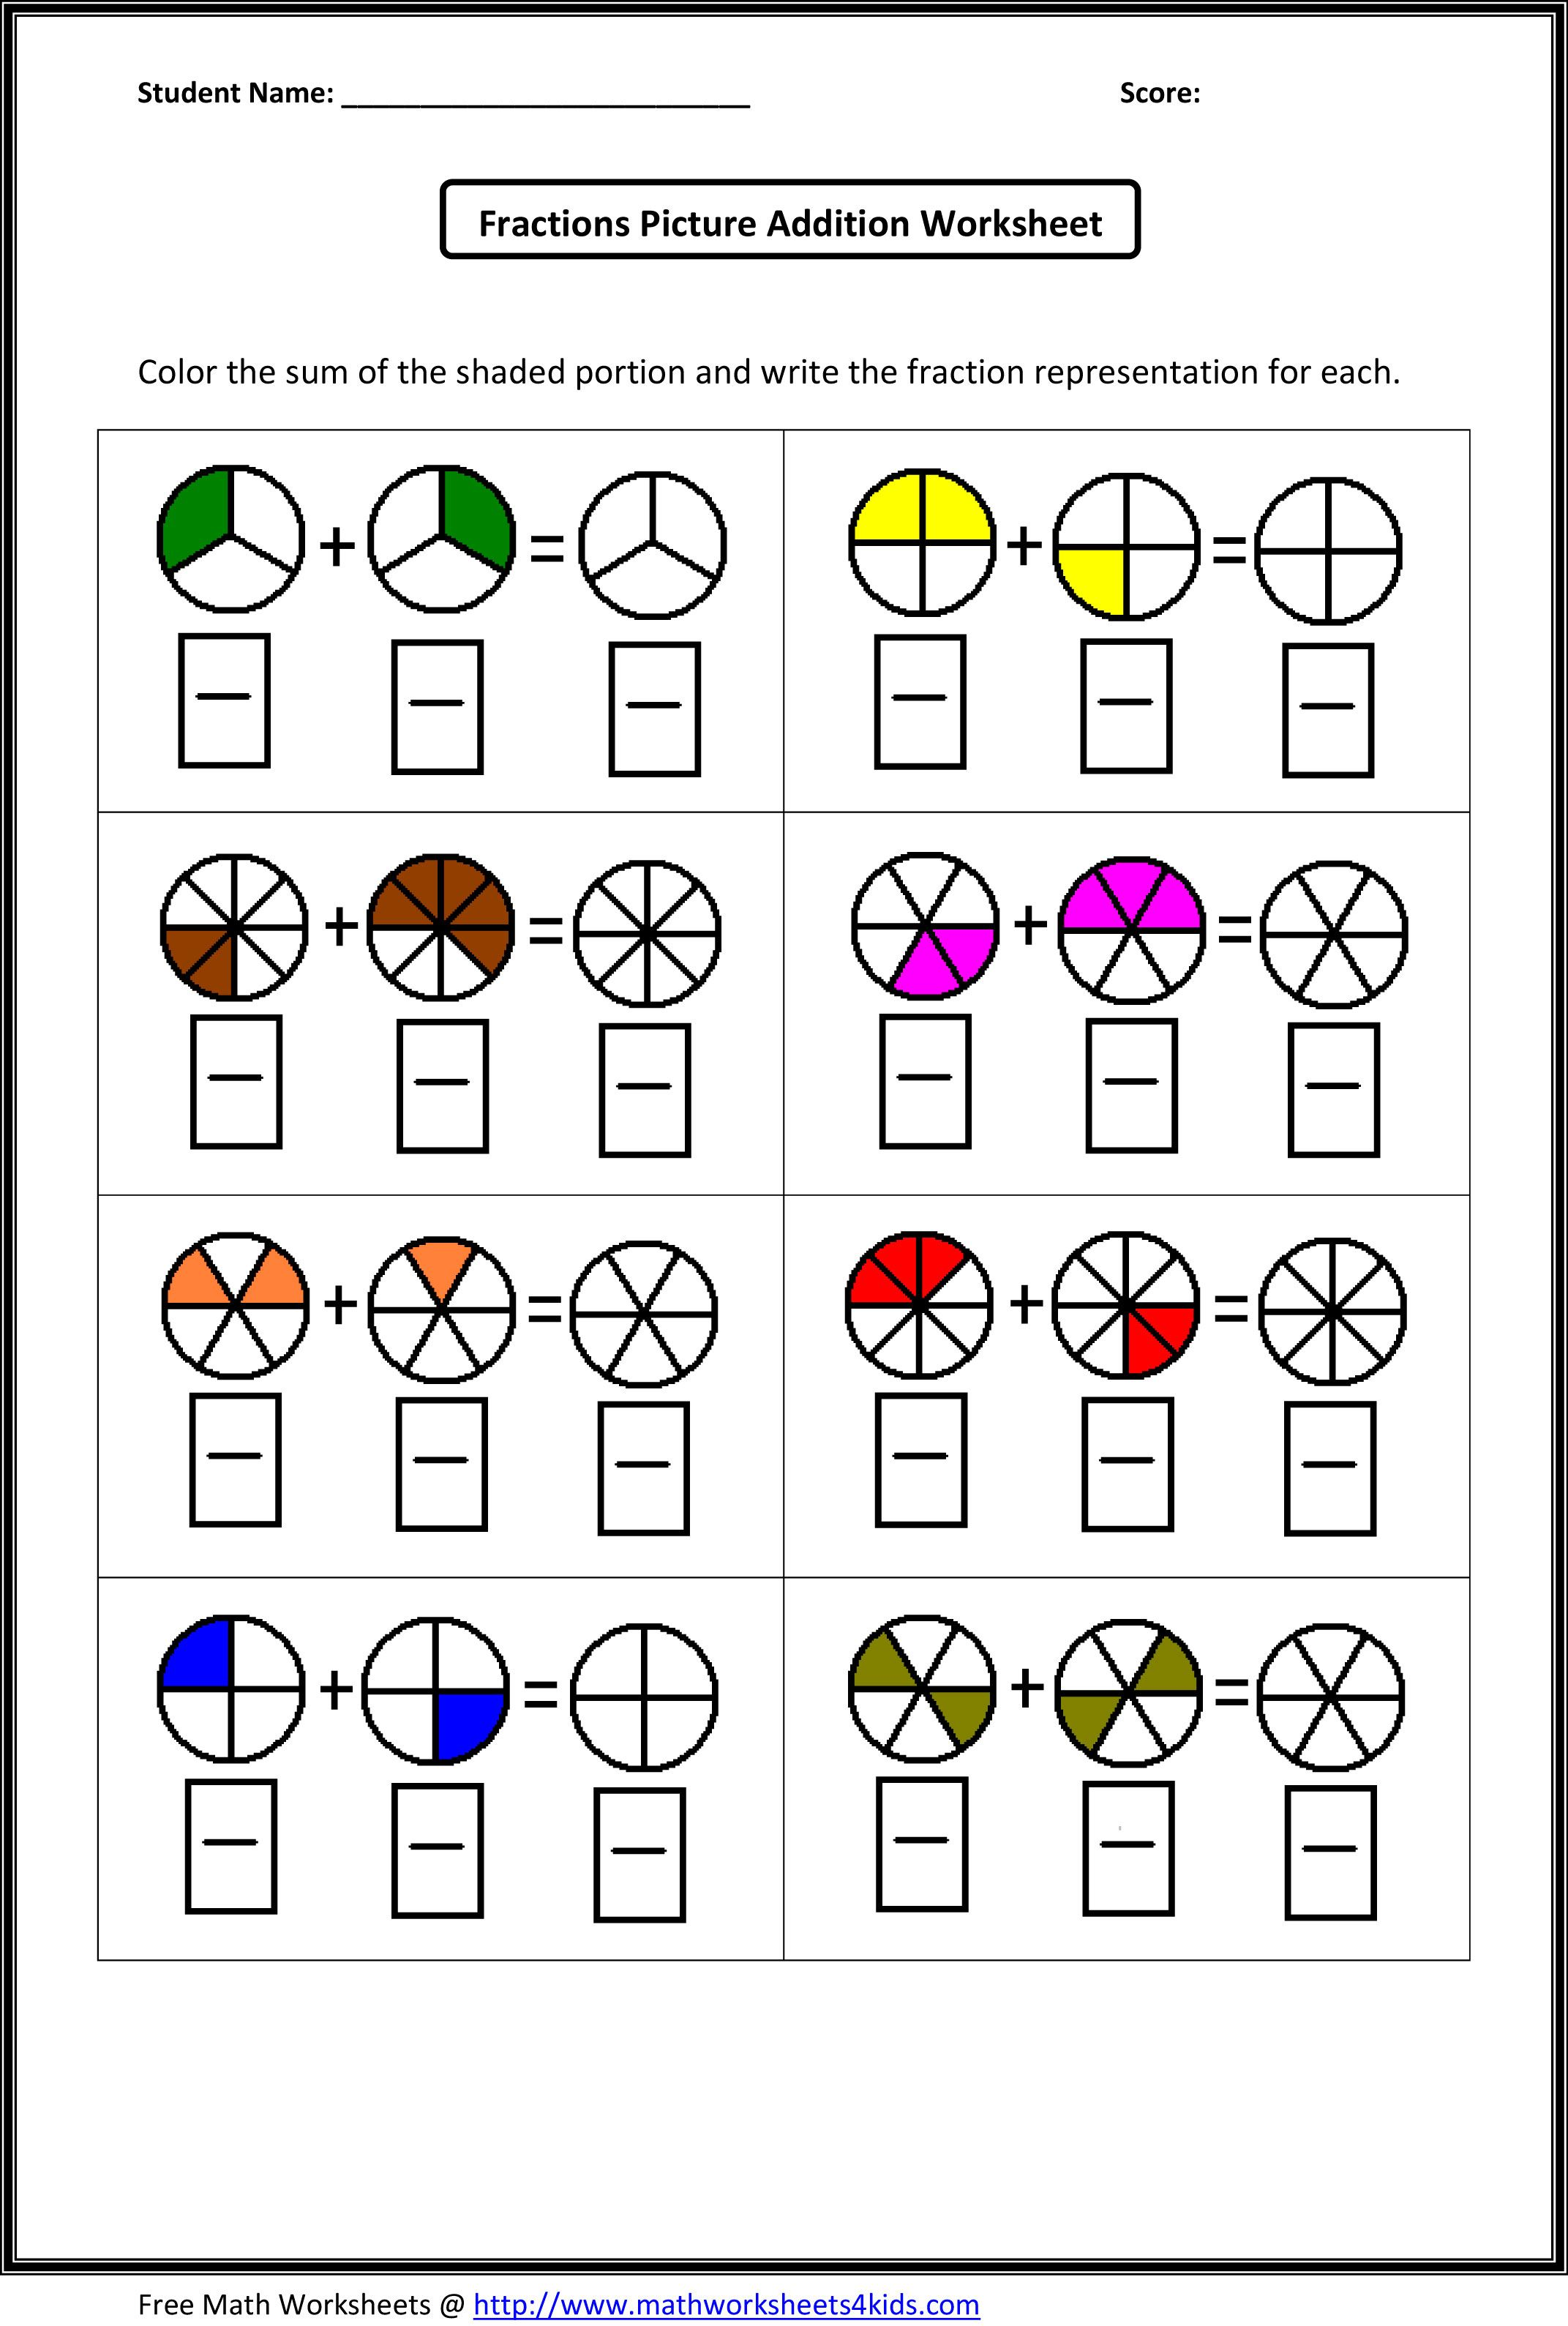 hight resolution of Adding Fractions Worksheets   Fractions worksheets